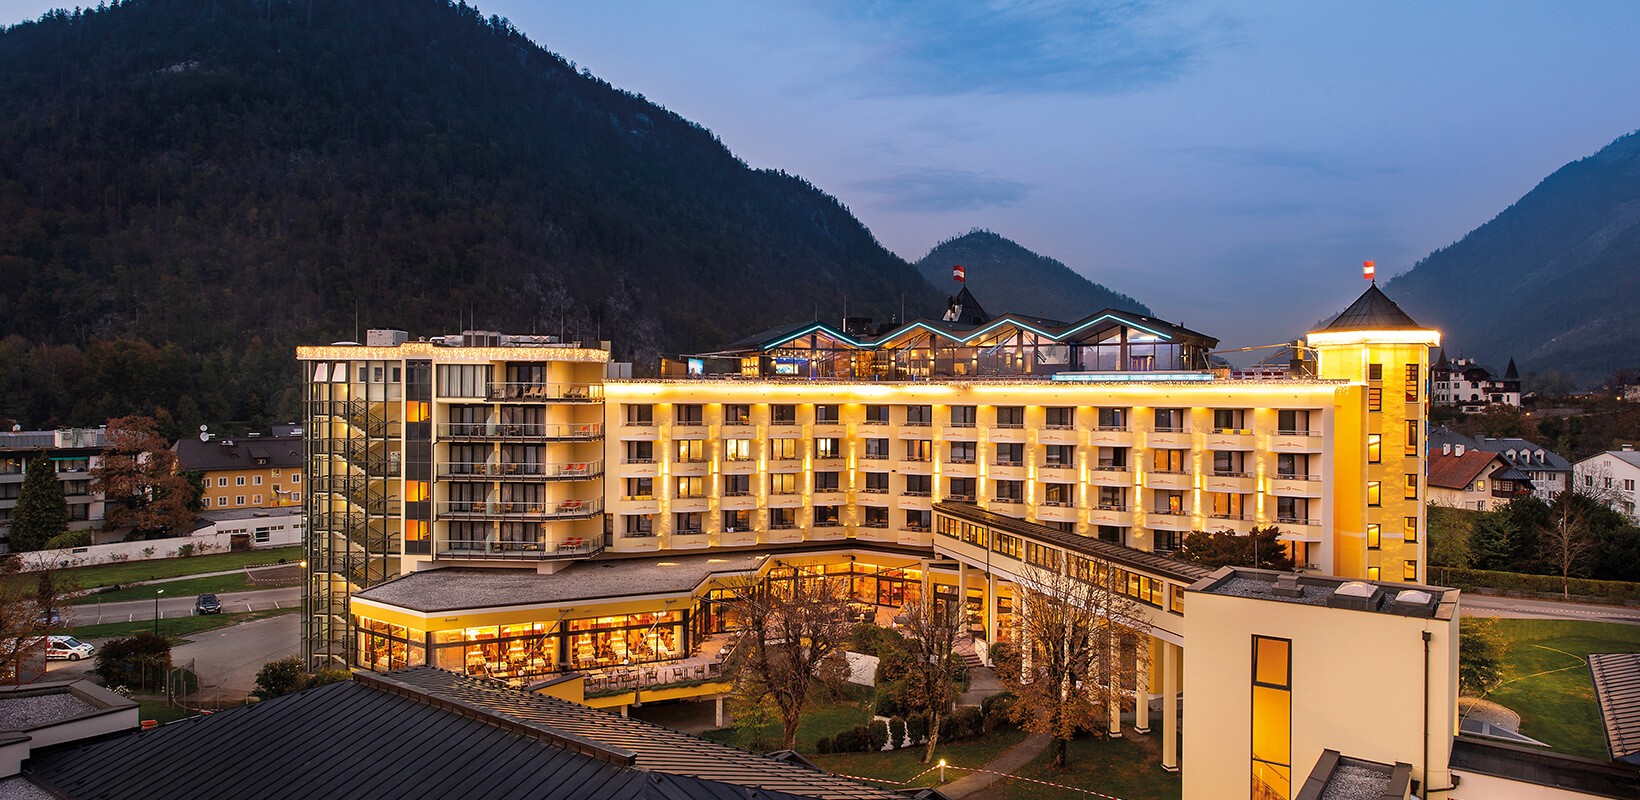 Bild: Eurotherme Bad Ischl_Quelle Eurothermen Resorts